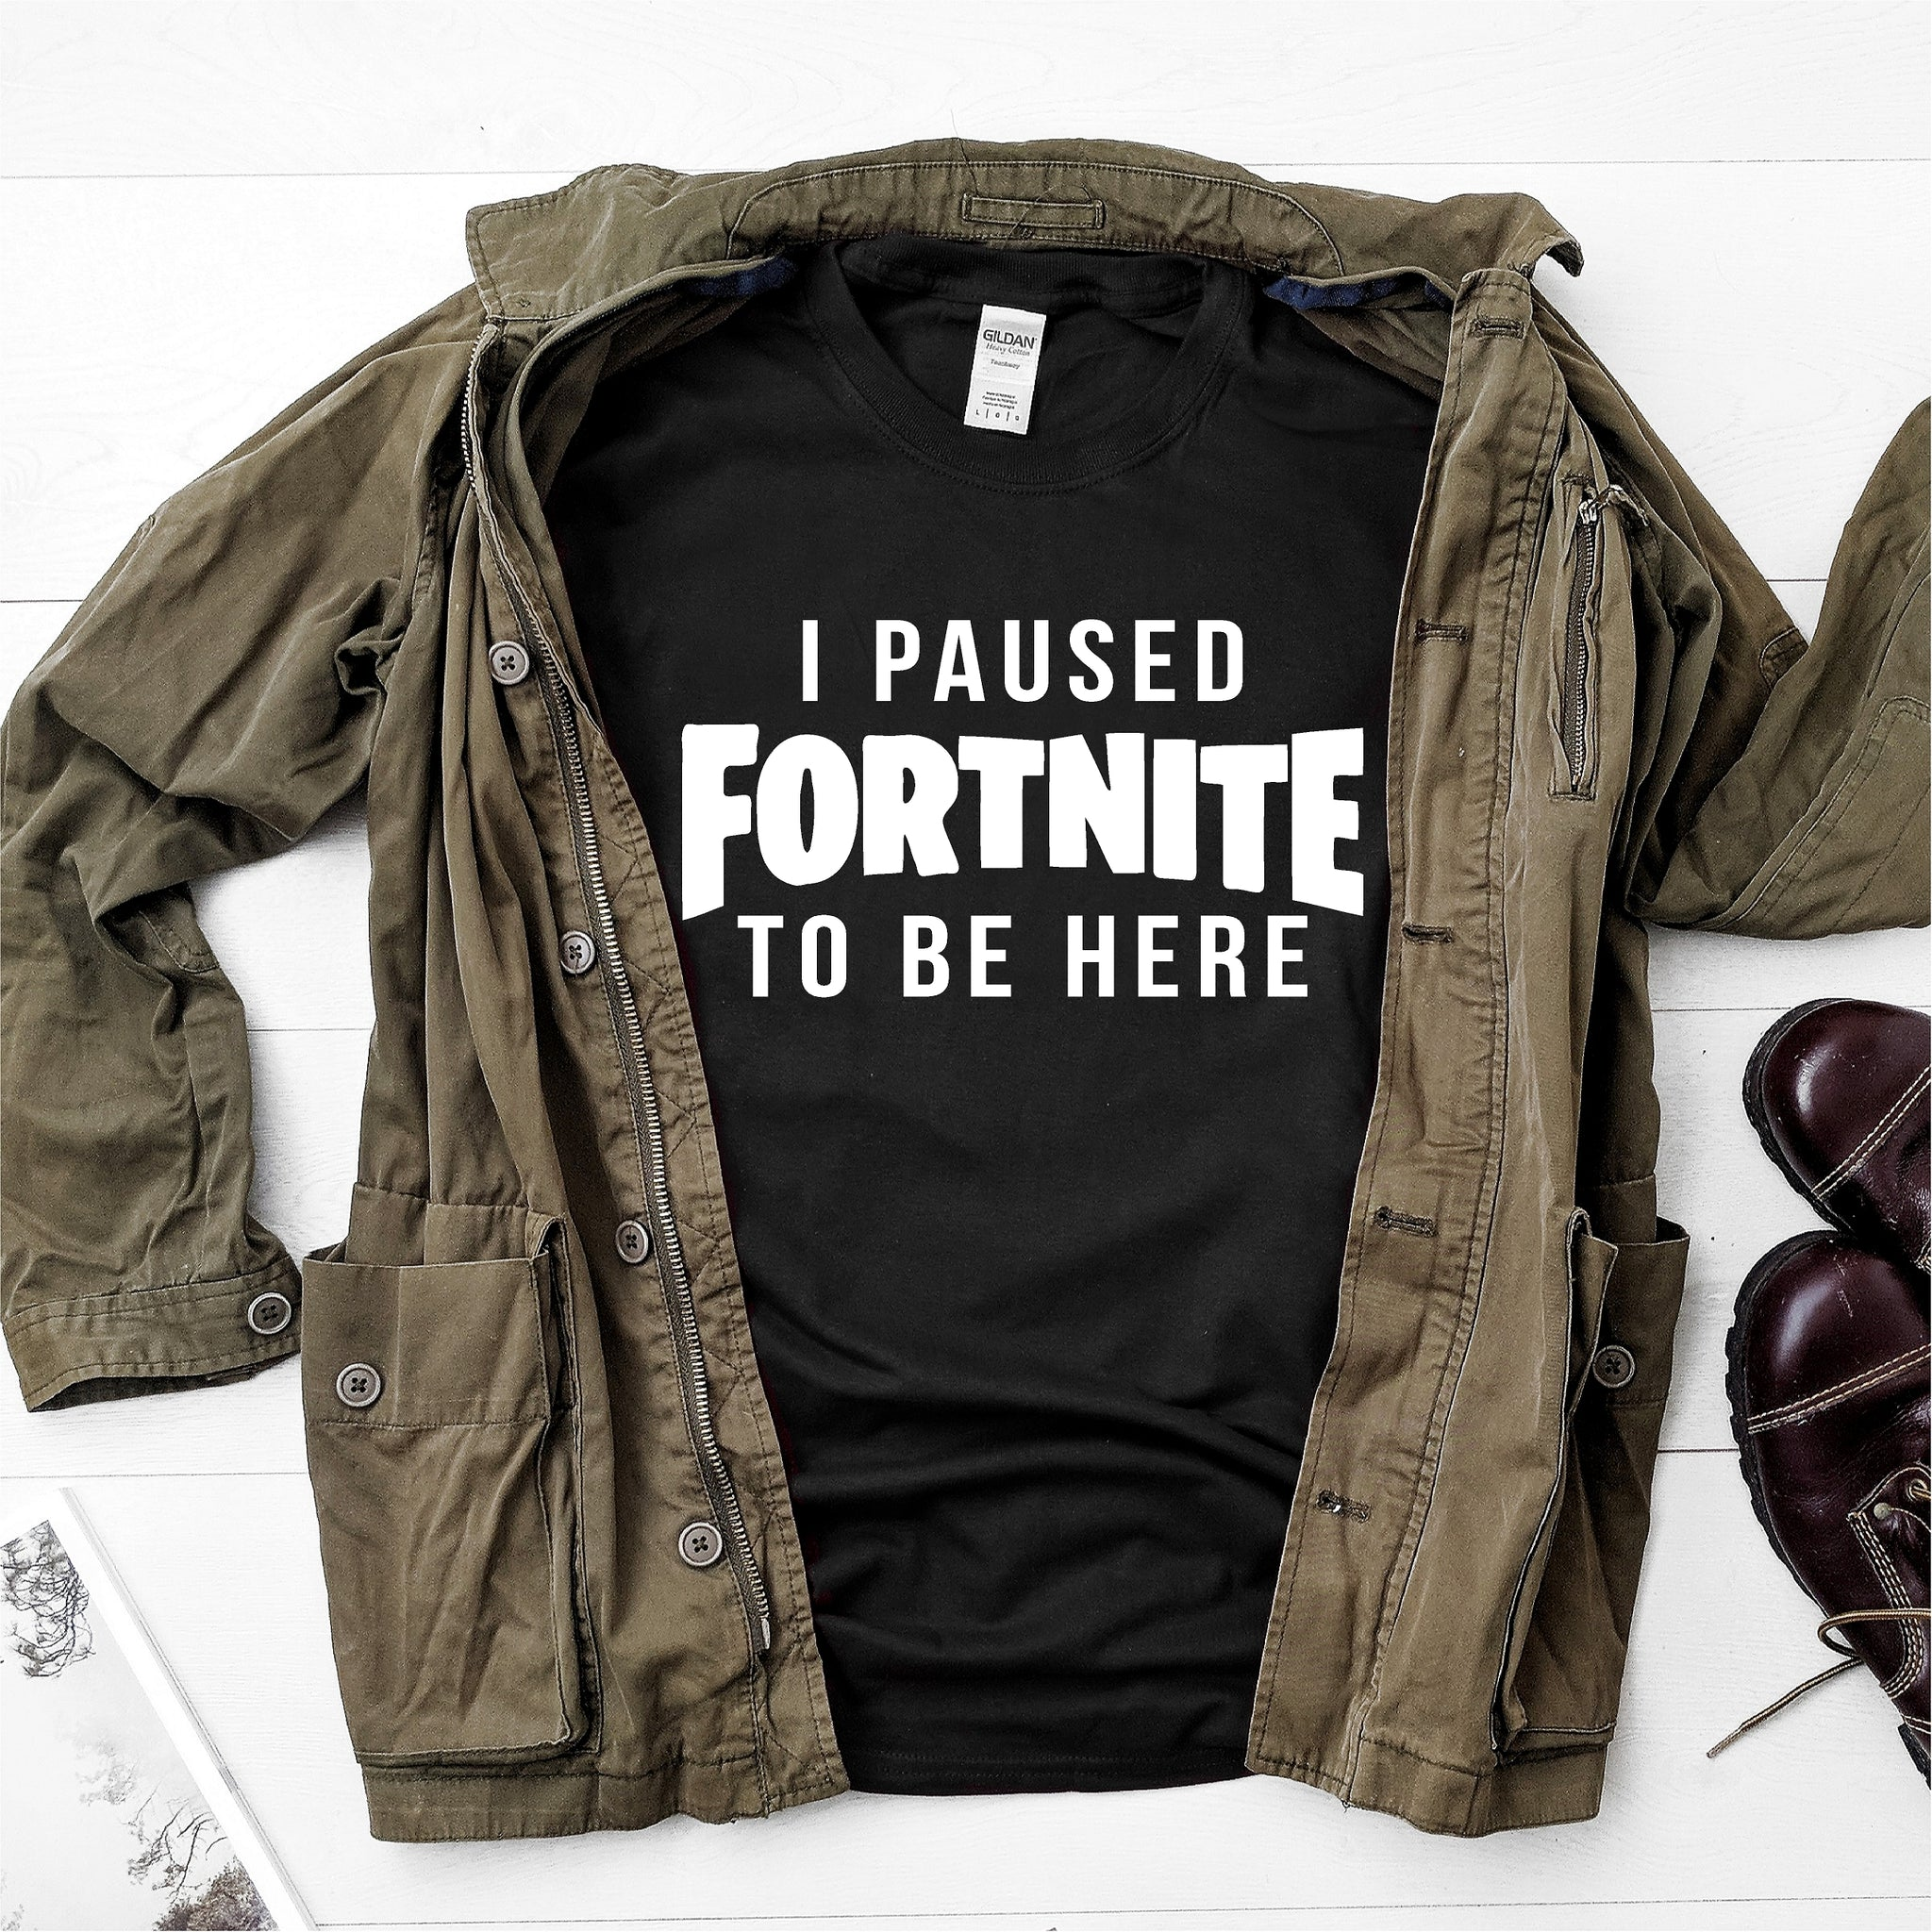 I Paused Fortnite To Be Here-  Ultra Cotton Short Sleeve T-Shirt - DFHM19